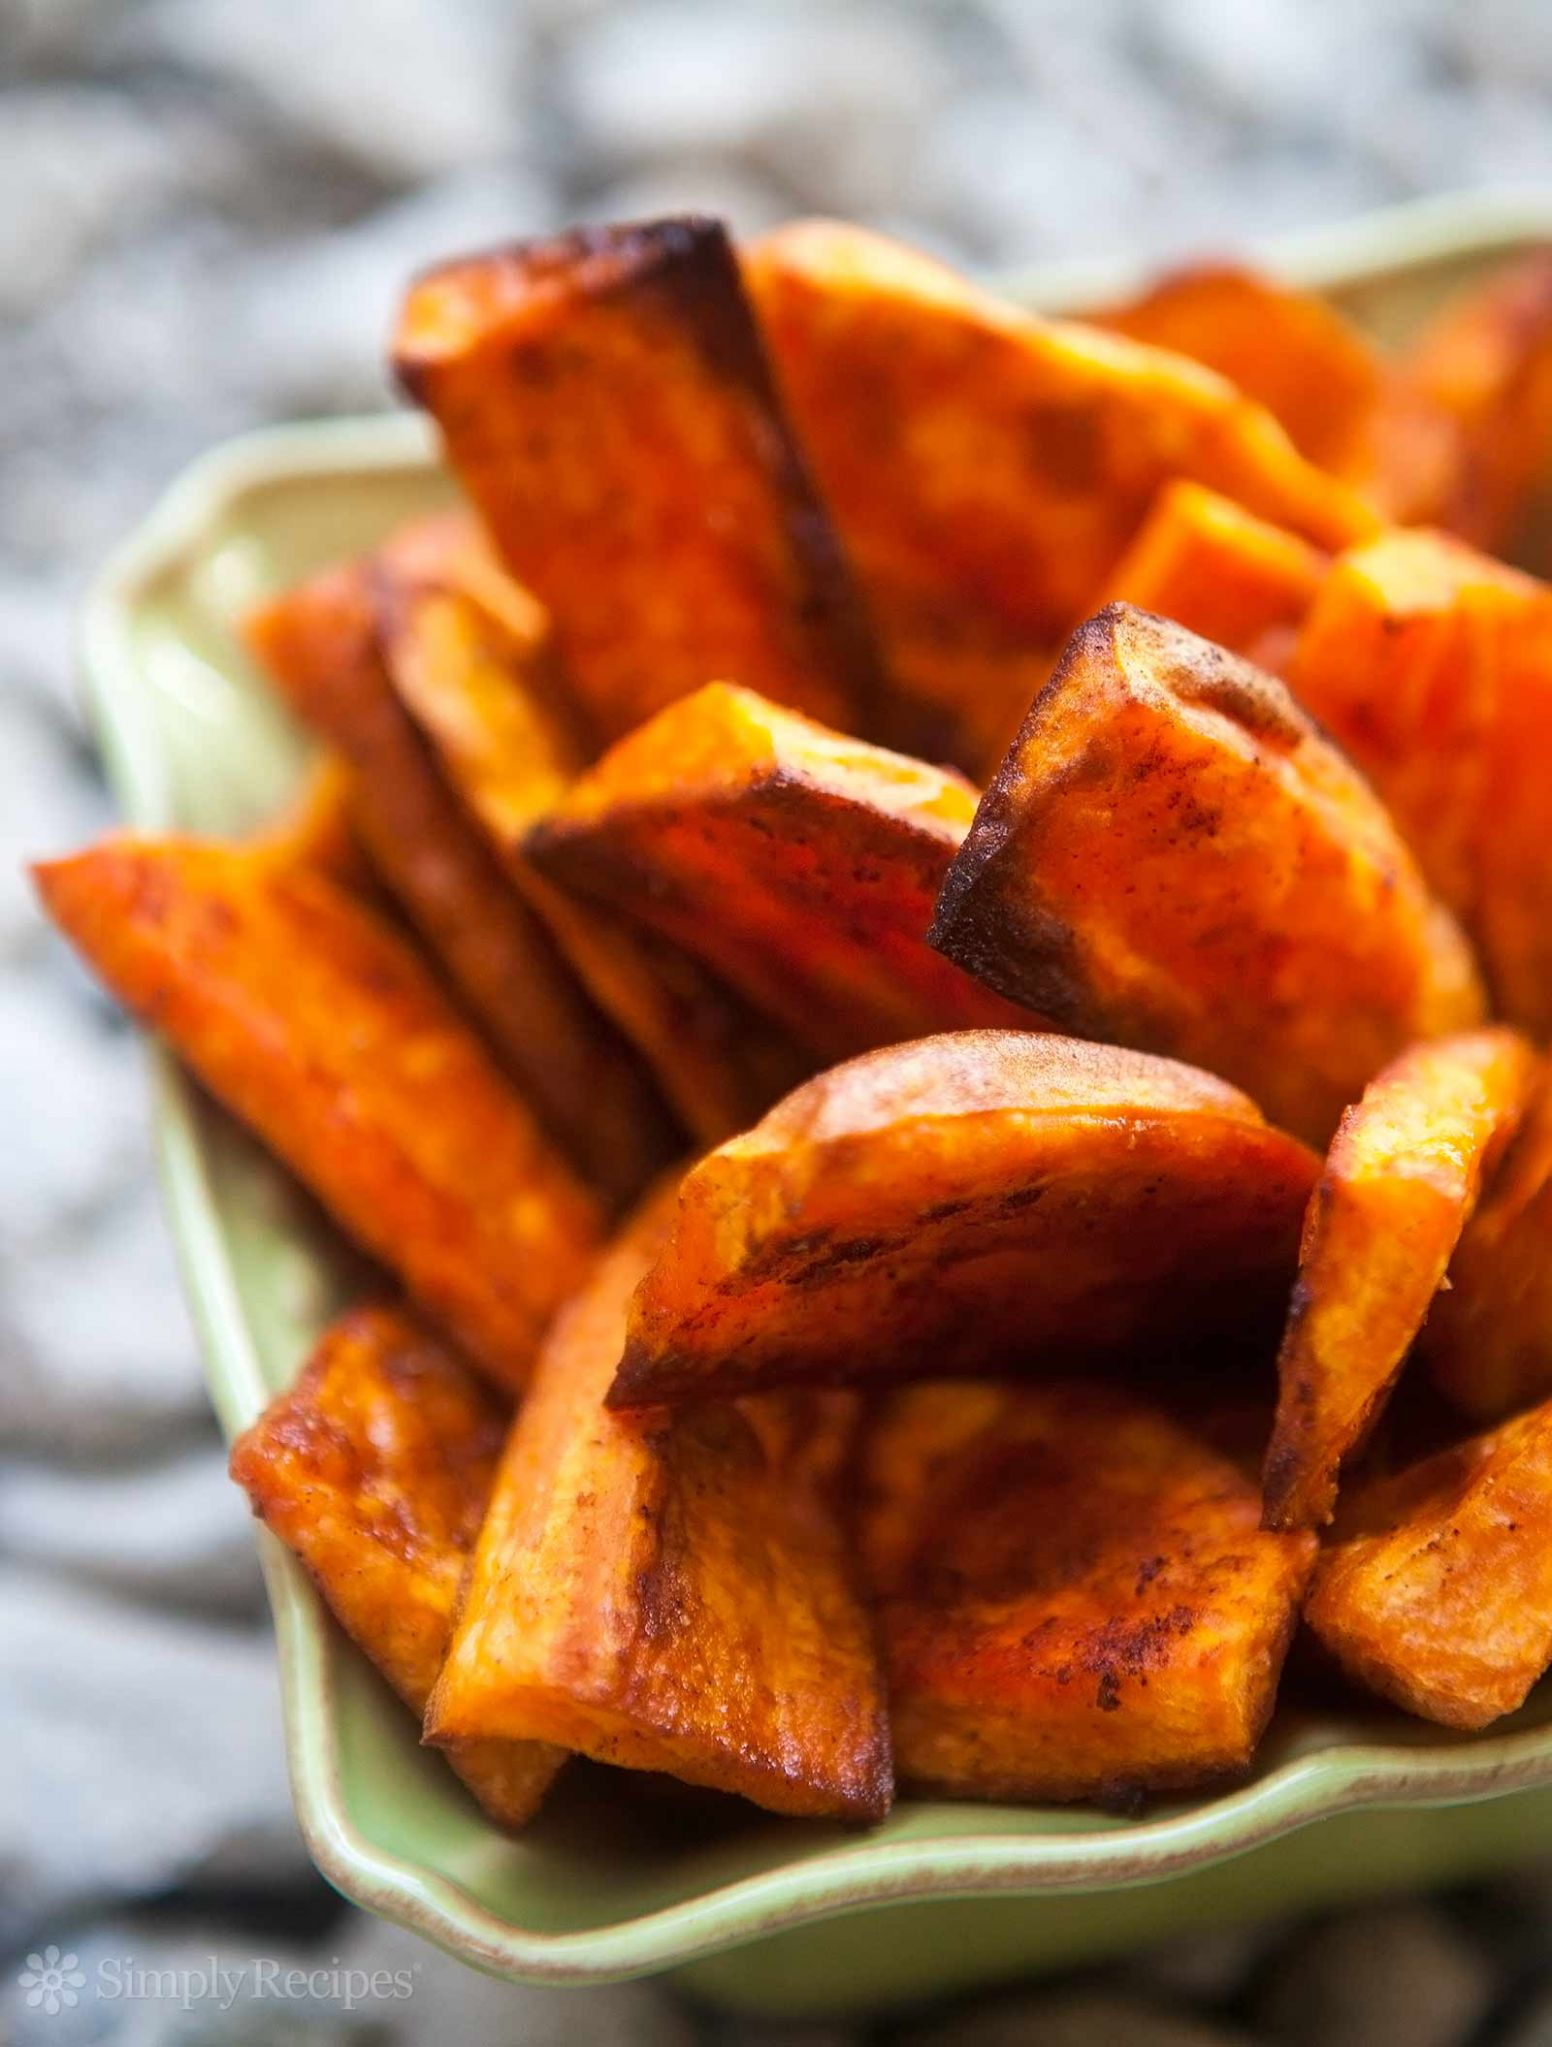 Oven Baked Sweet Potato Fries - Simple Yam Recipes Baked